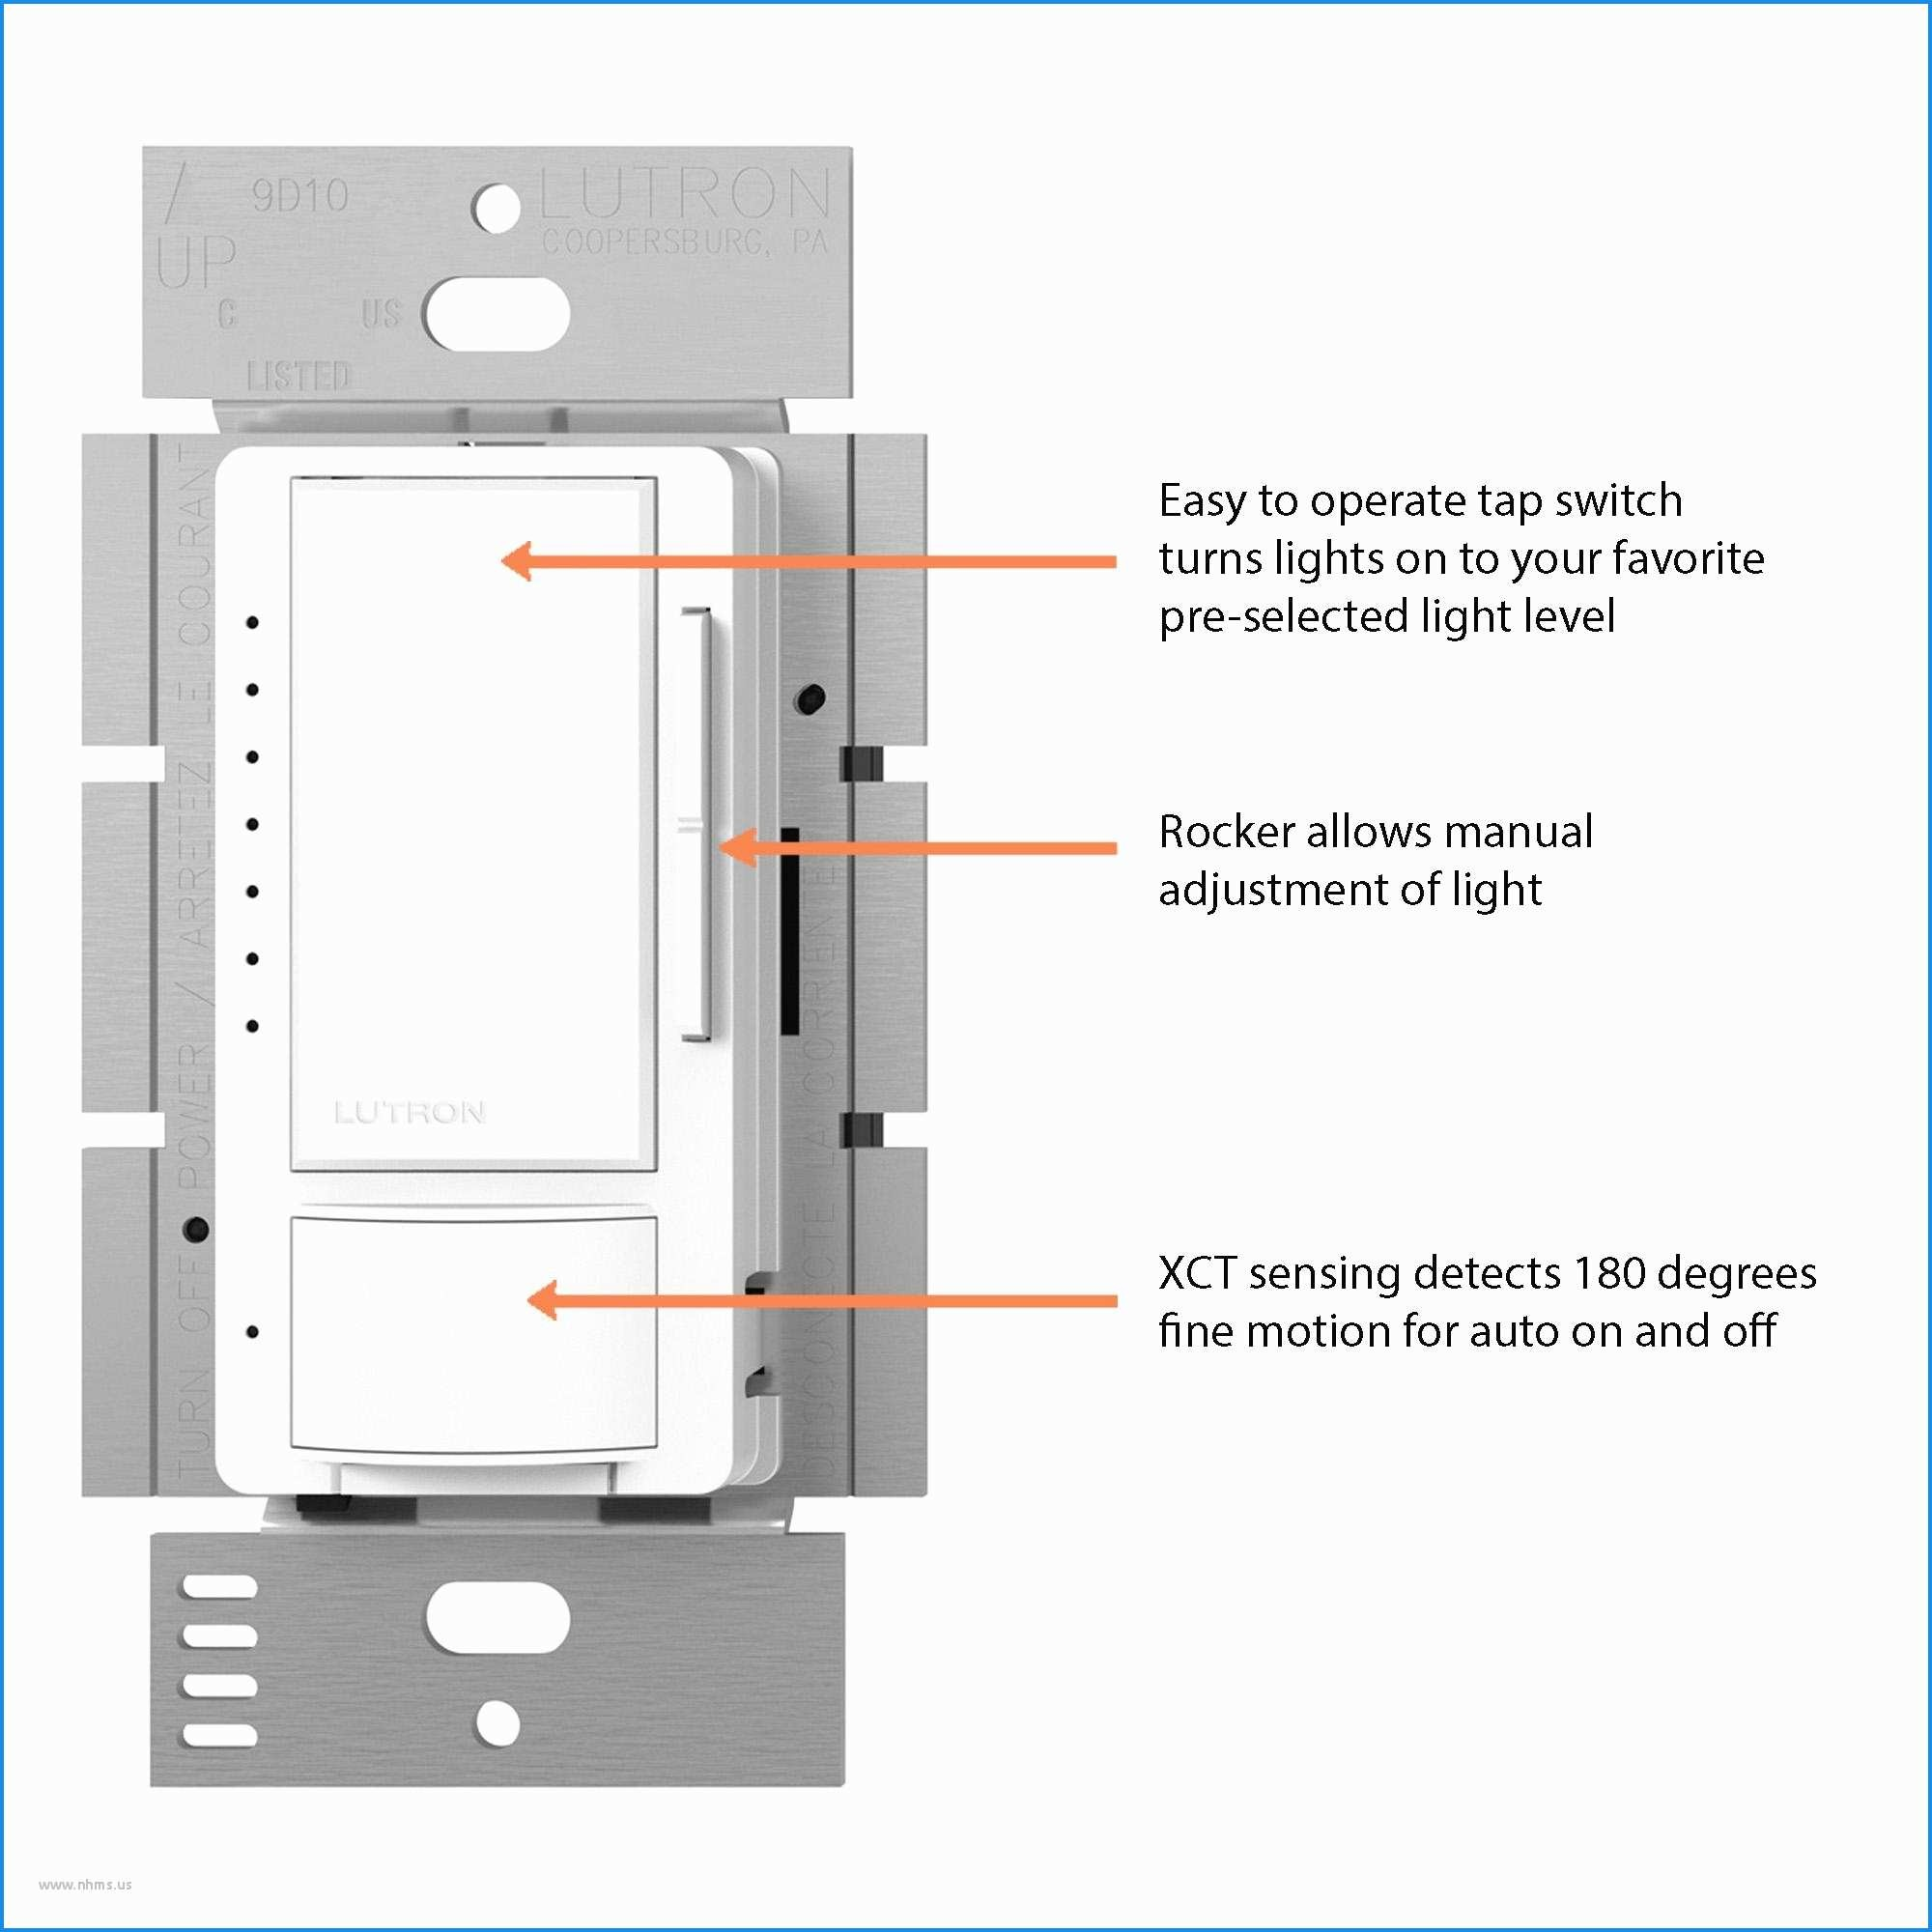 [OV_8437] Led Dimmer Switch Wiring Diagram Without